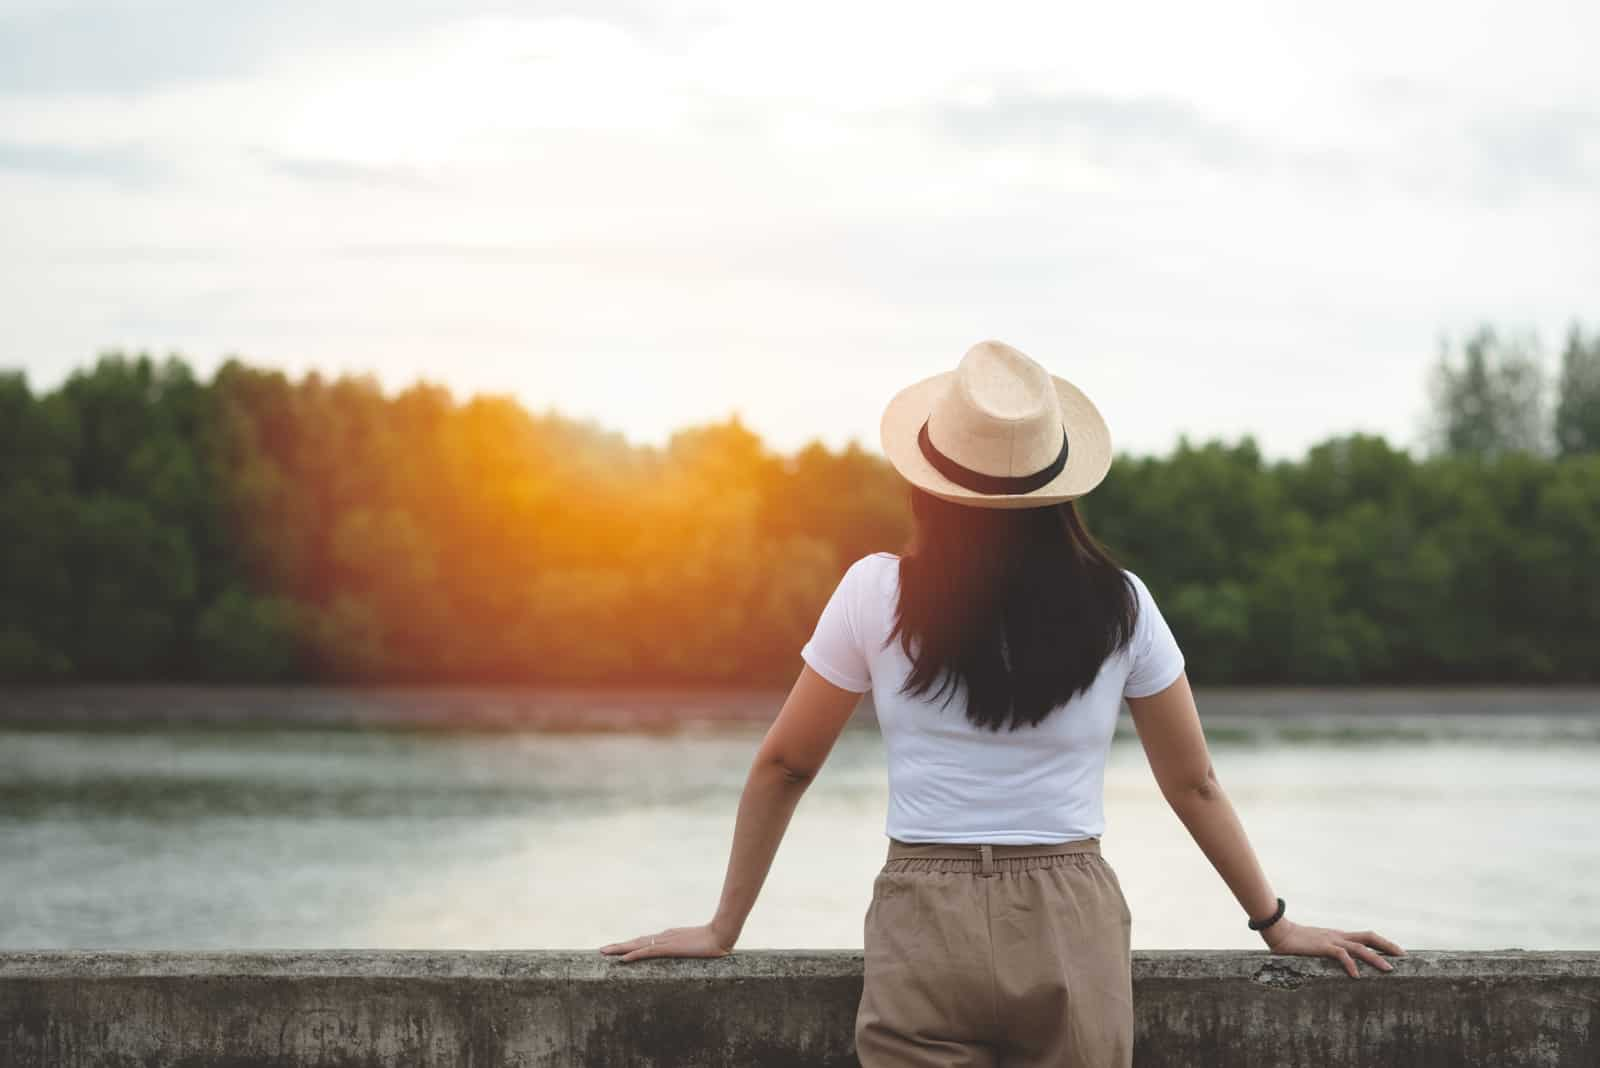 a black-haired woman with a hat on her head stands and looks at the river